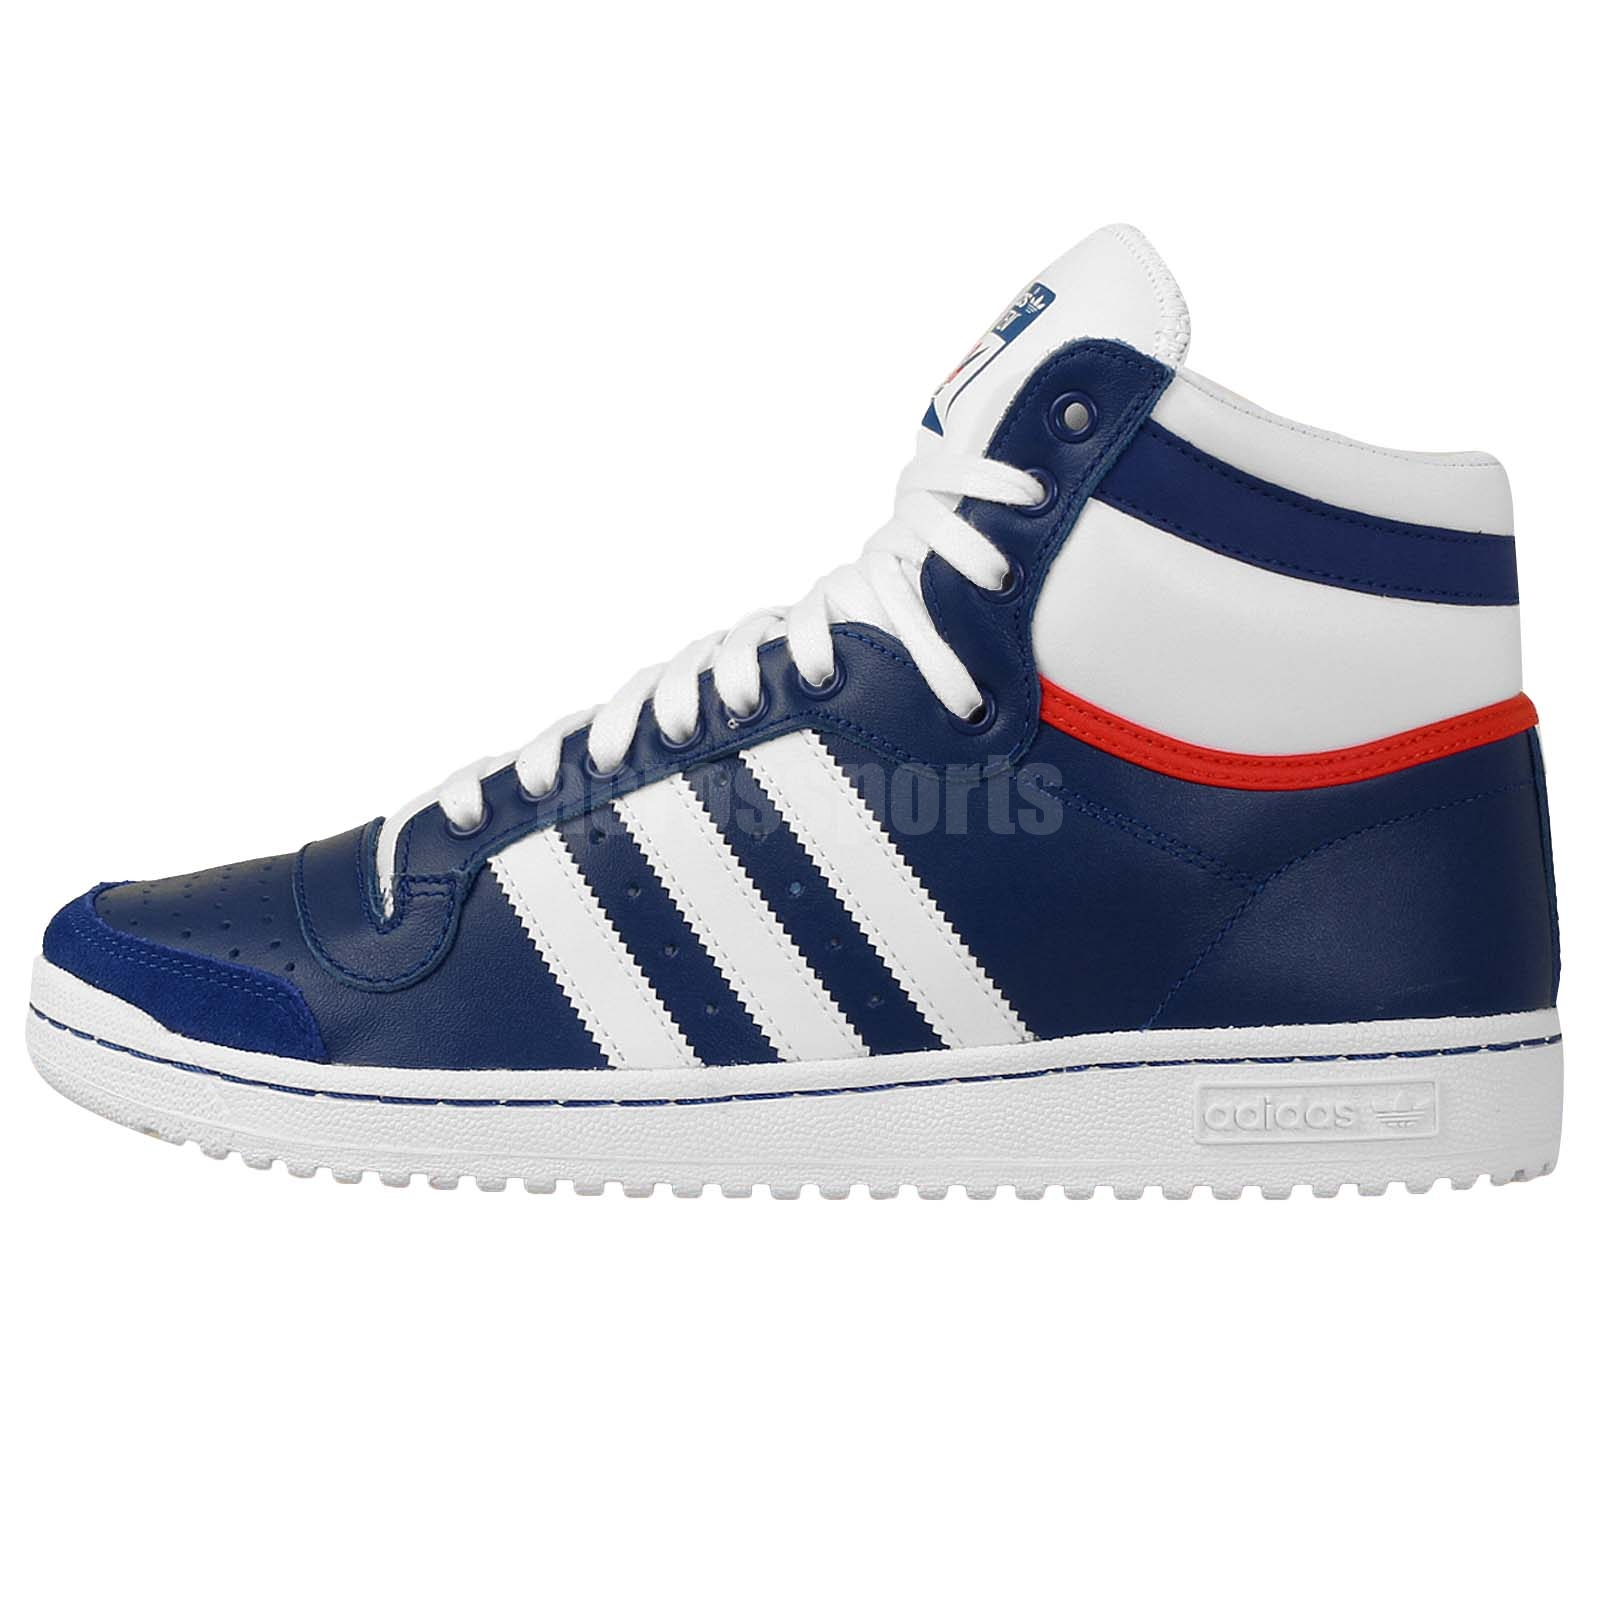 Uk Import Tax Shoes